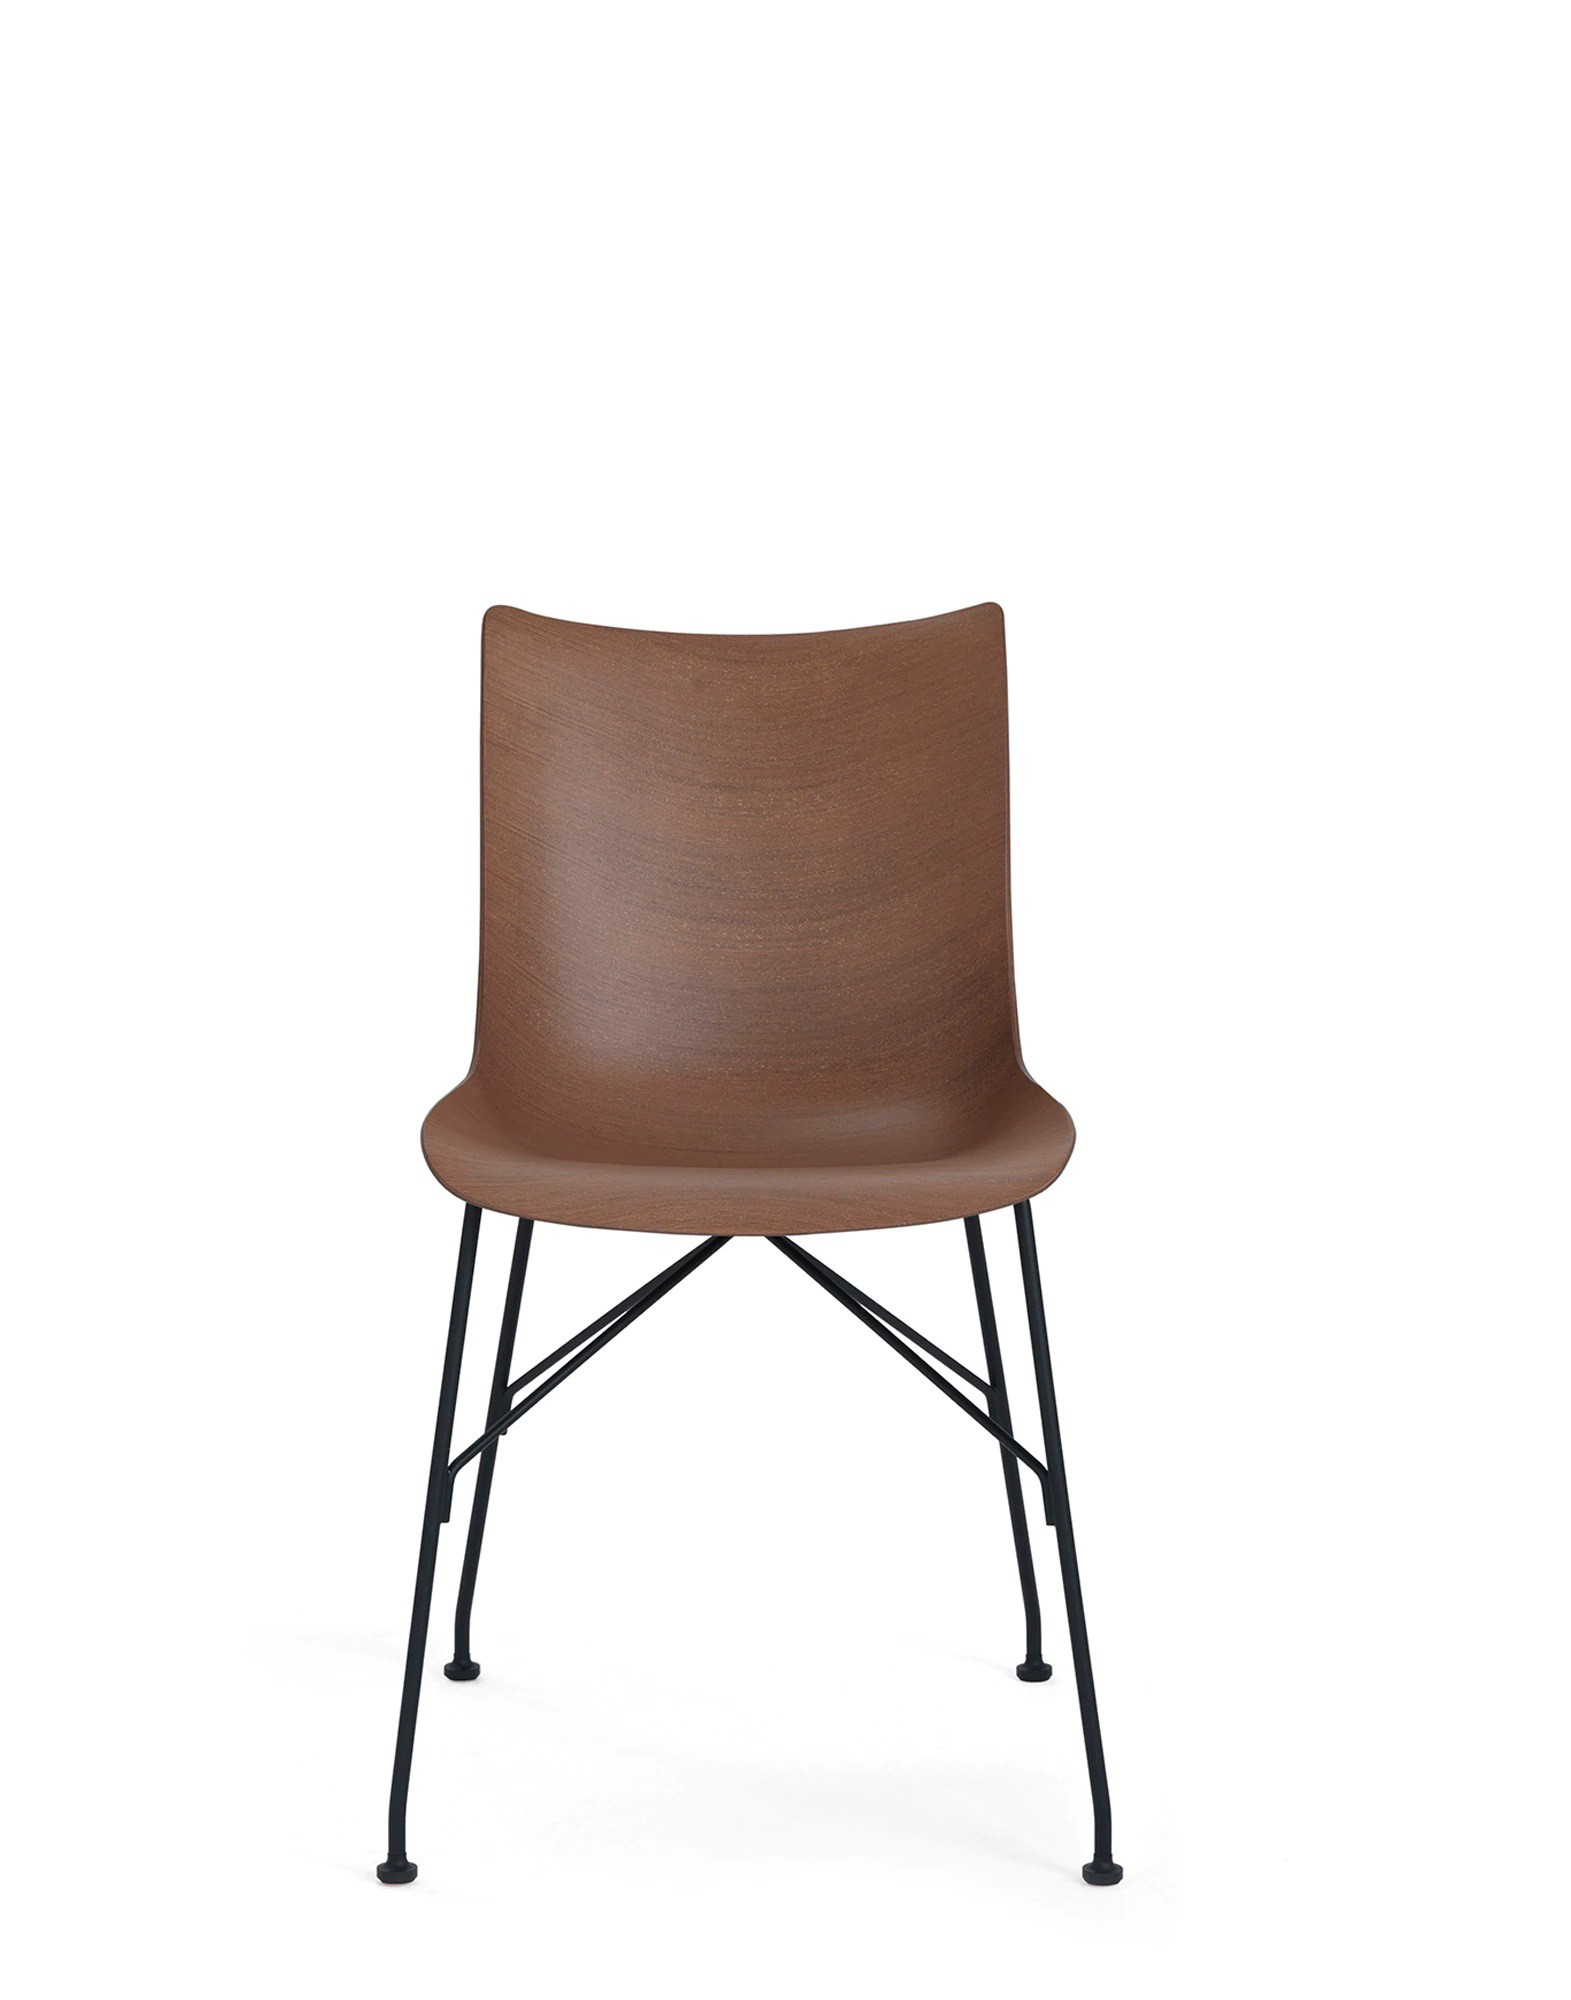 Chaise P/Wood Hêtre - Kartell